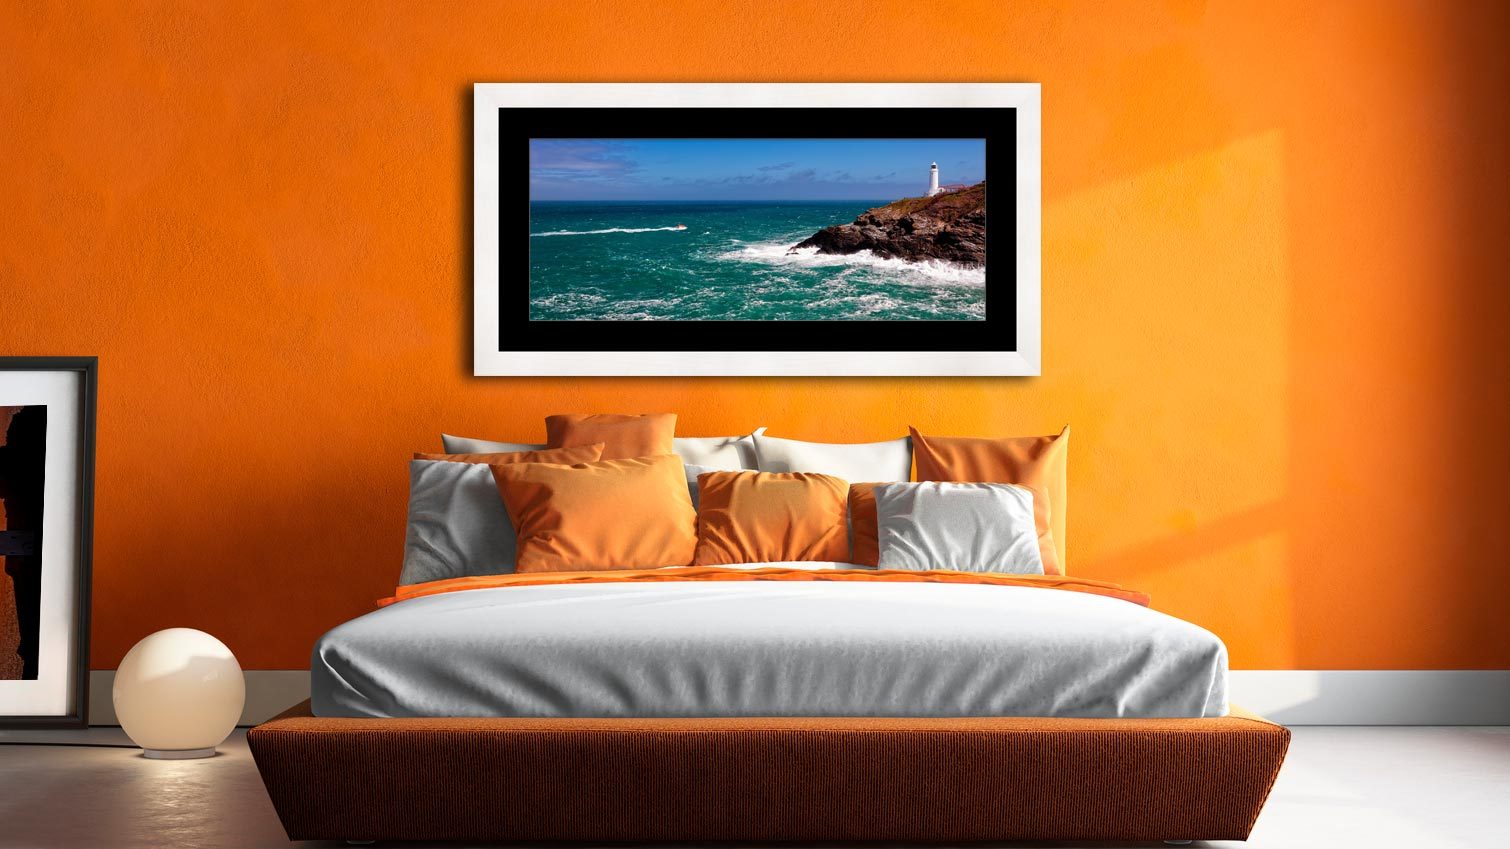 Trevose Head Lighthouse and Lifeboat - Framed Print with Mount on Wall